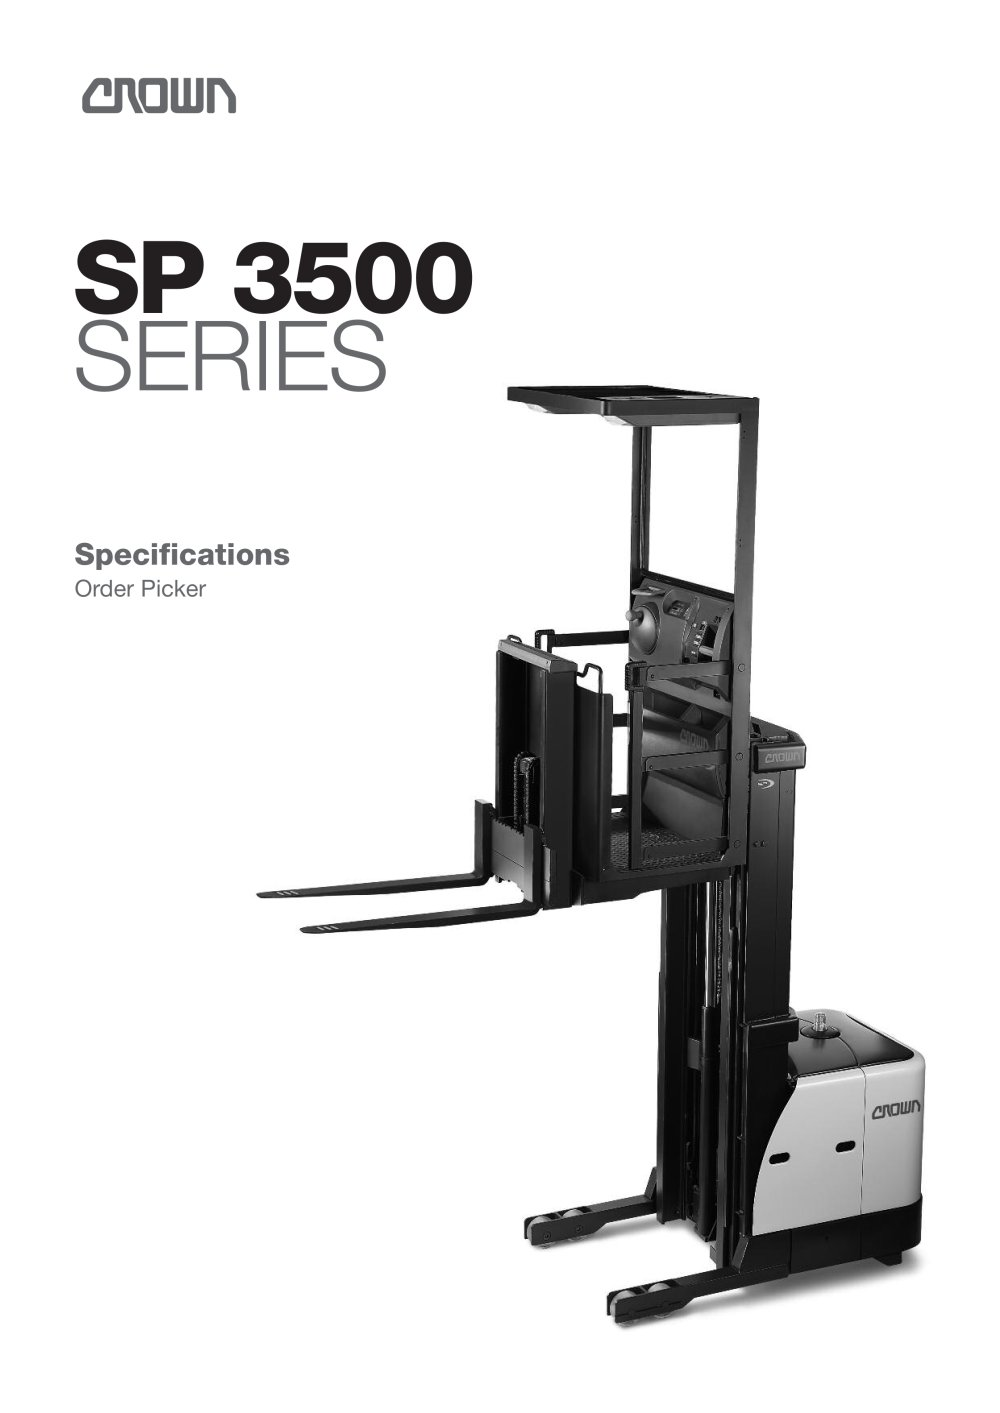 Order picker SP 3500 - CROWN - PDF Catalogue | Technical ...